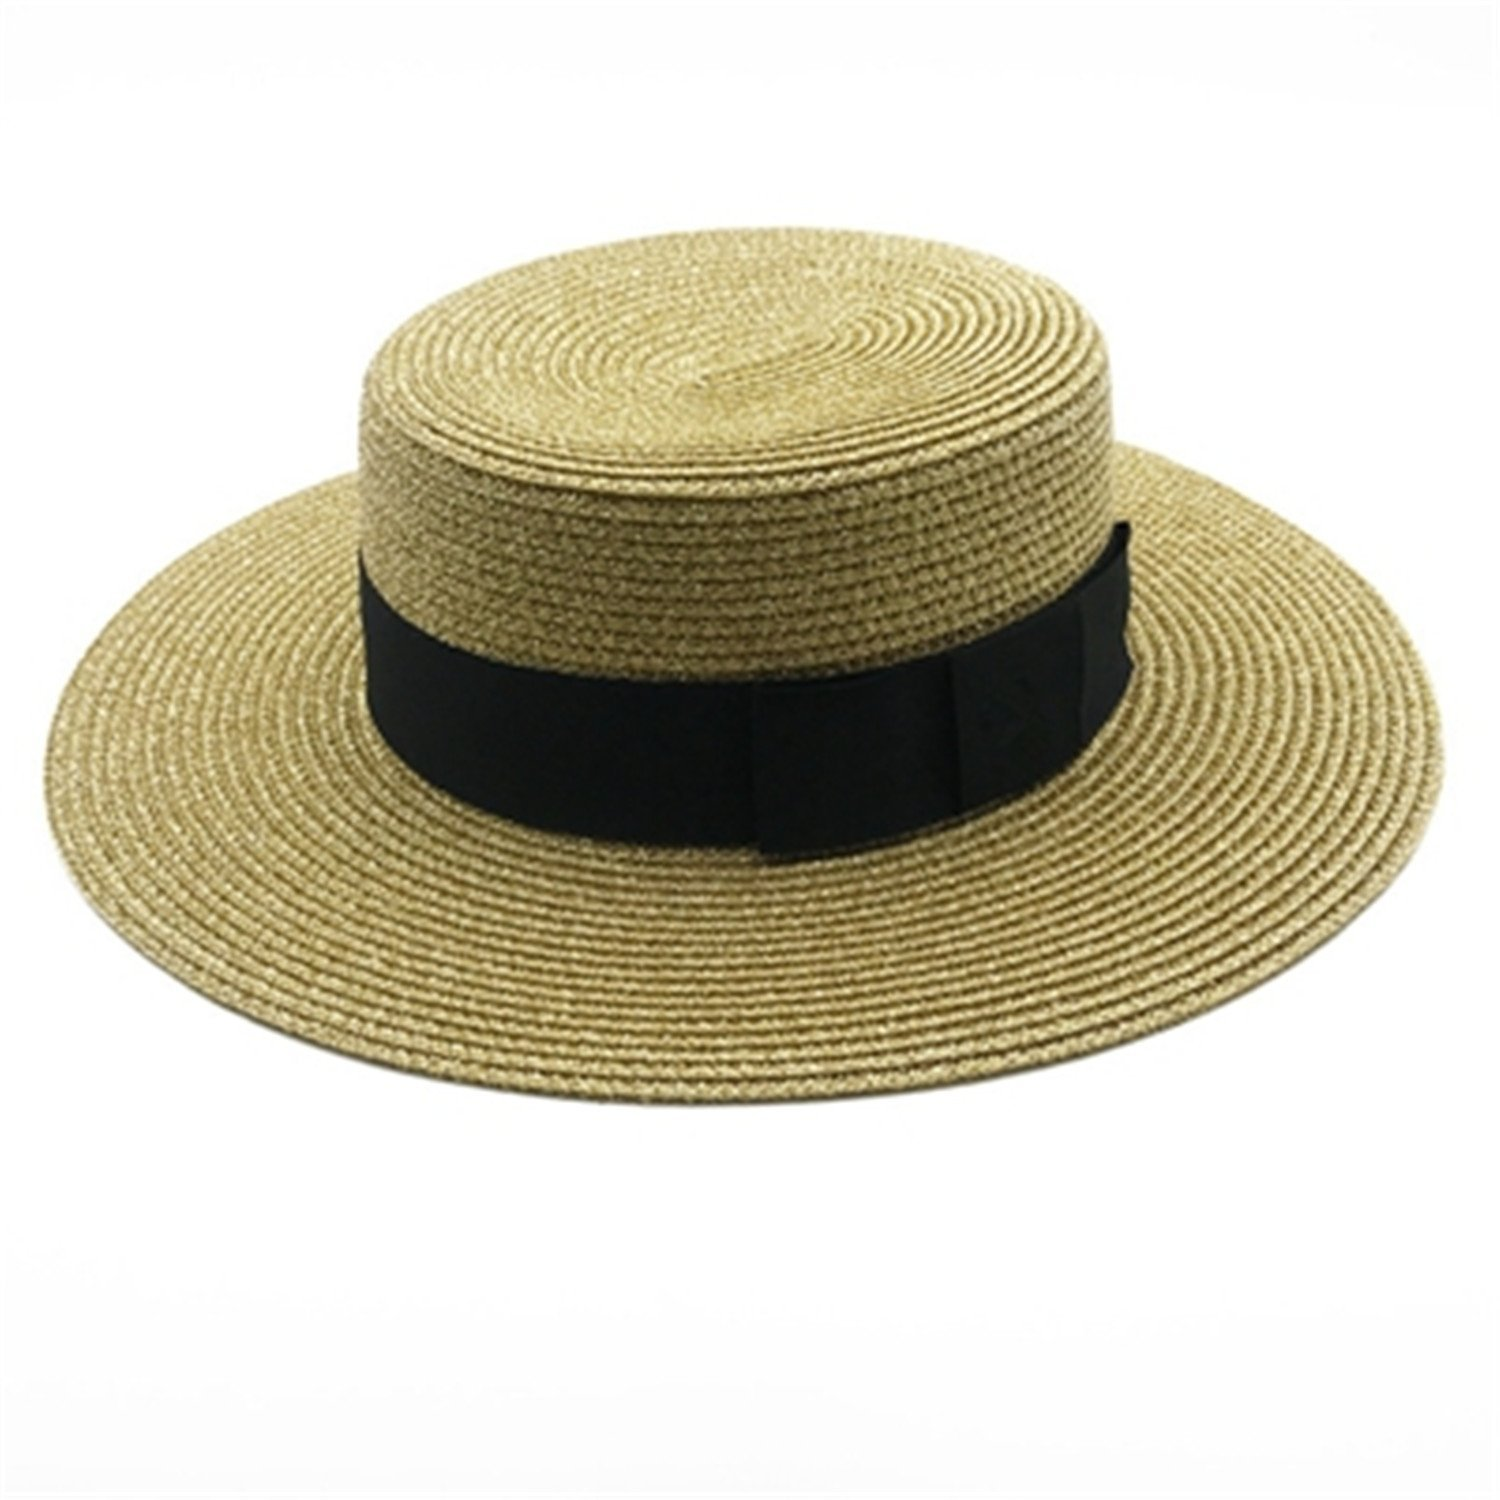 1e20765bf7055 Get Quotations · Barry picks Fashion Wide Brim Sun Hats Solid Ladies Straw  Hats Women Summer Beach Cap Young